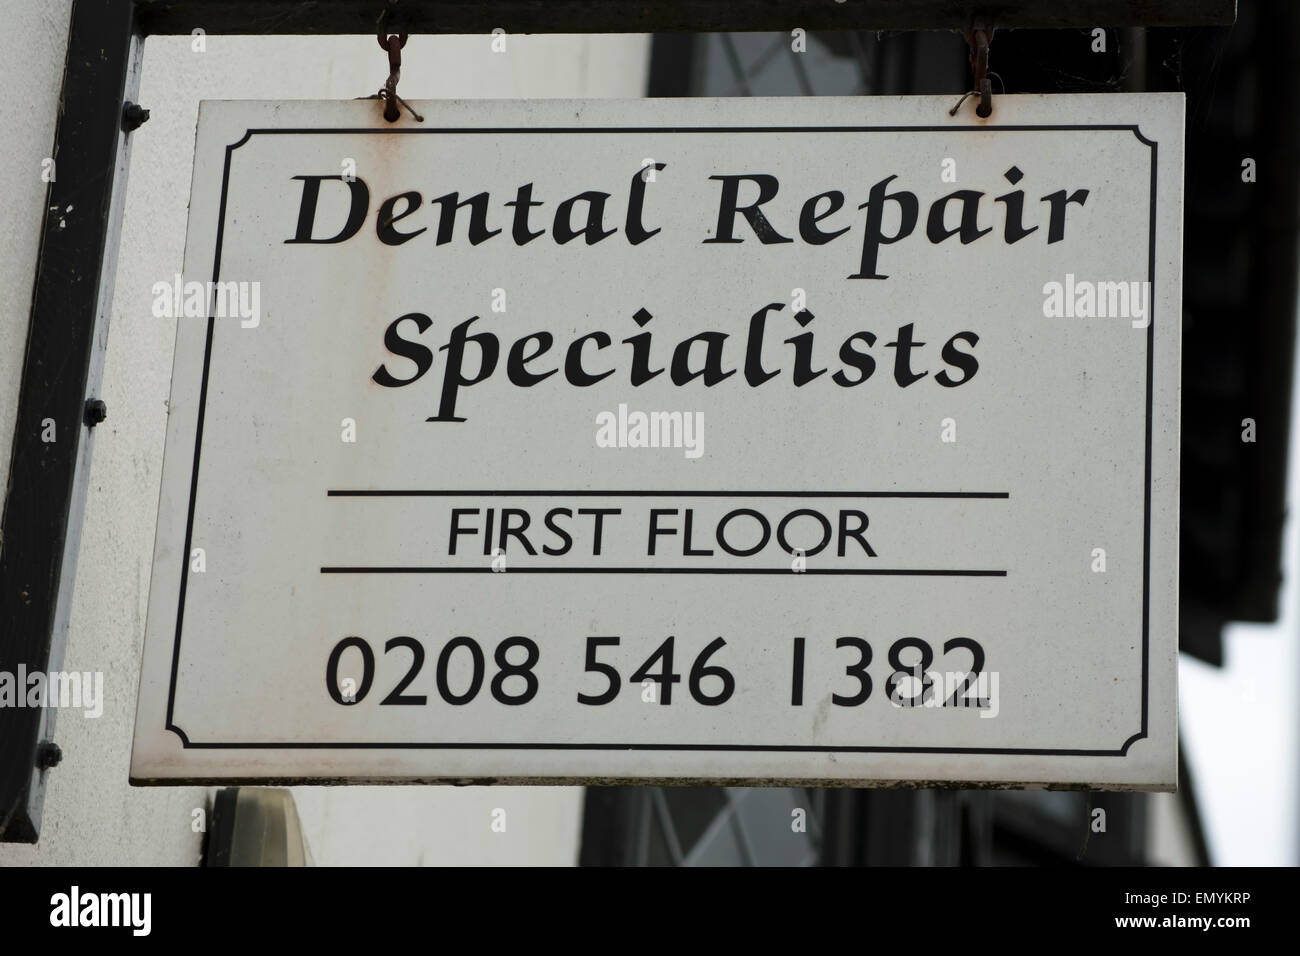 dental repair specialist hanging sign in kingston upon thames, surrey, england Stock Photo